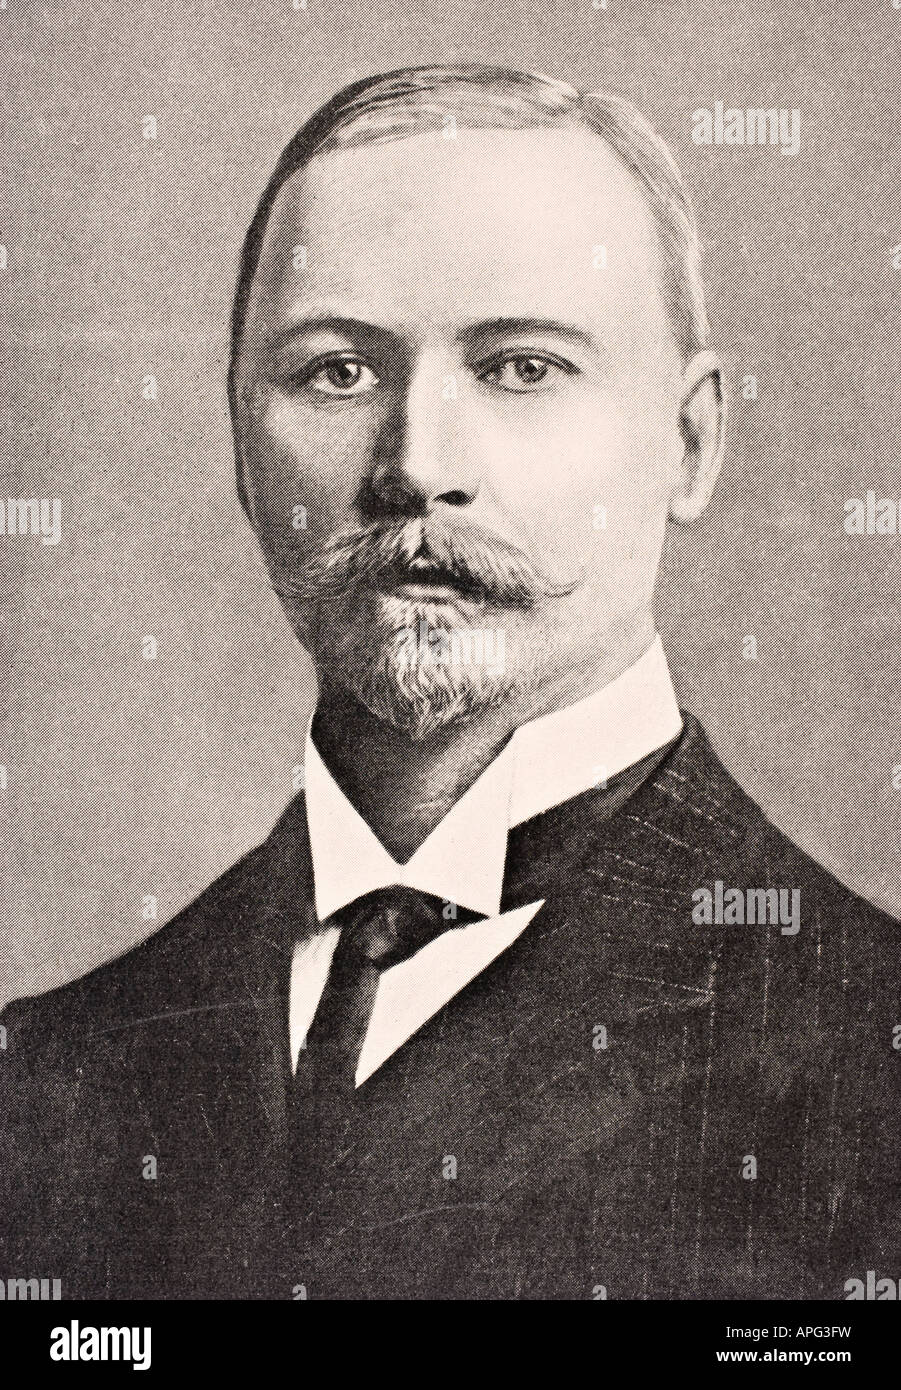 Jan Christiaan Smuts 1870 to 1950 South African statesman and soldier as he looked circa 1915 - Stock Image